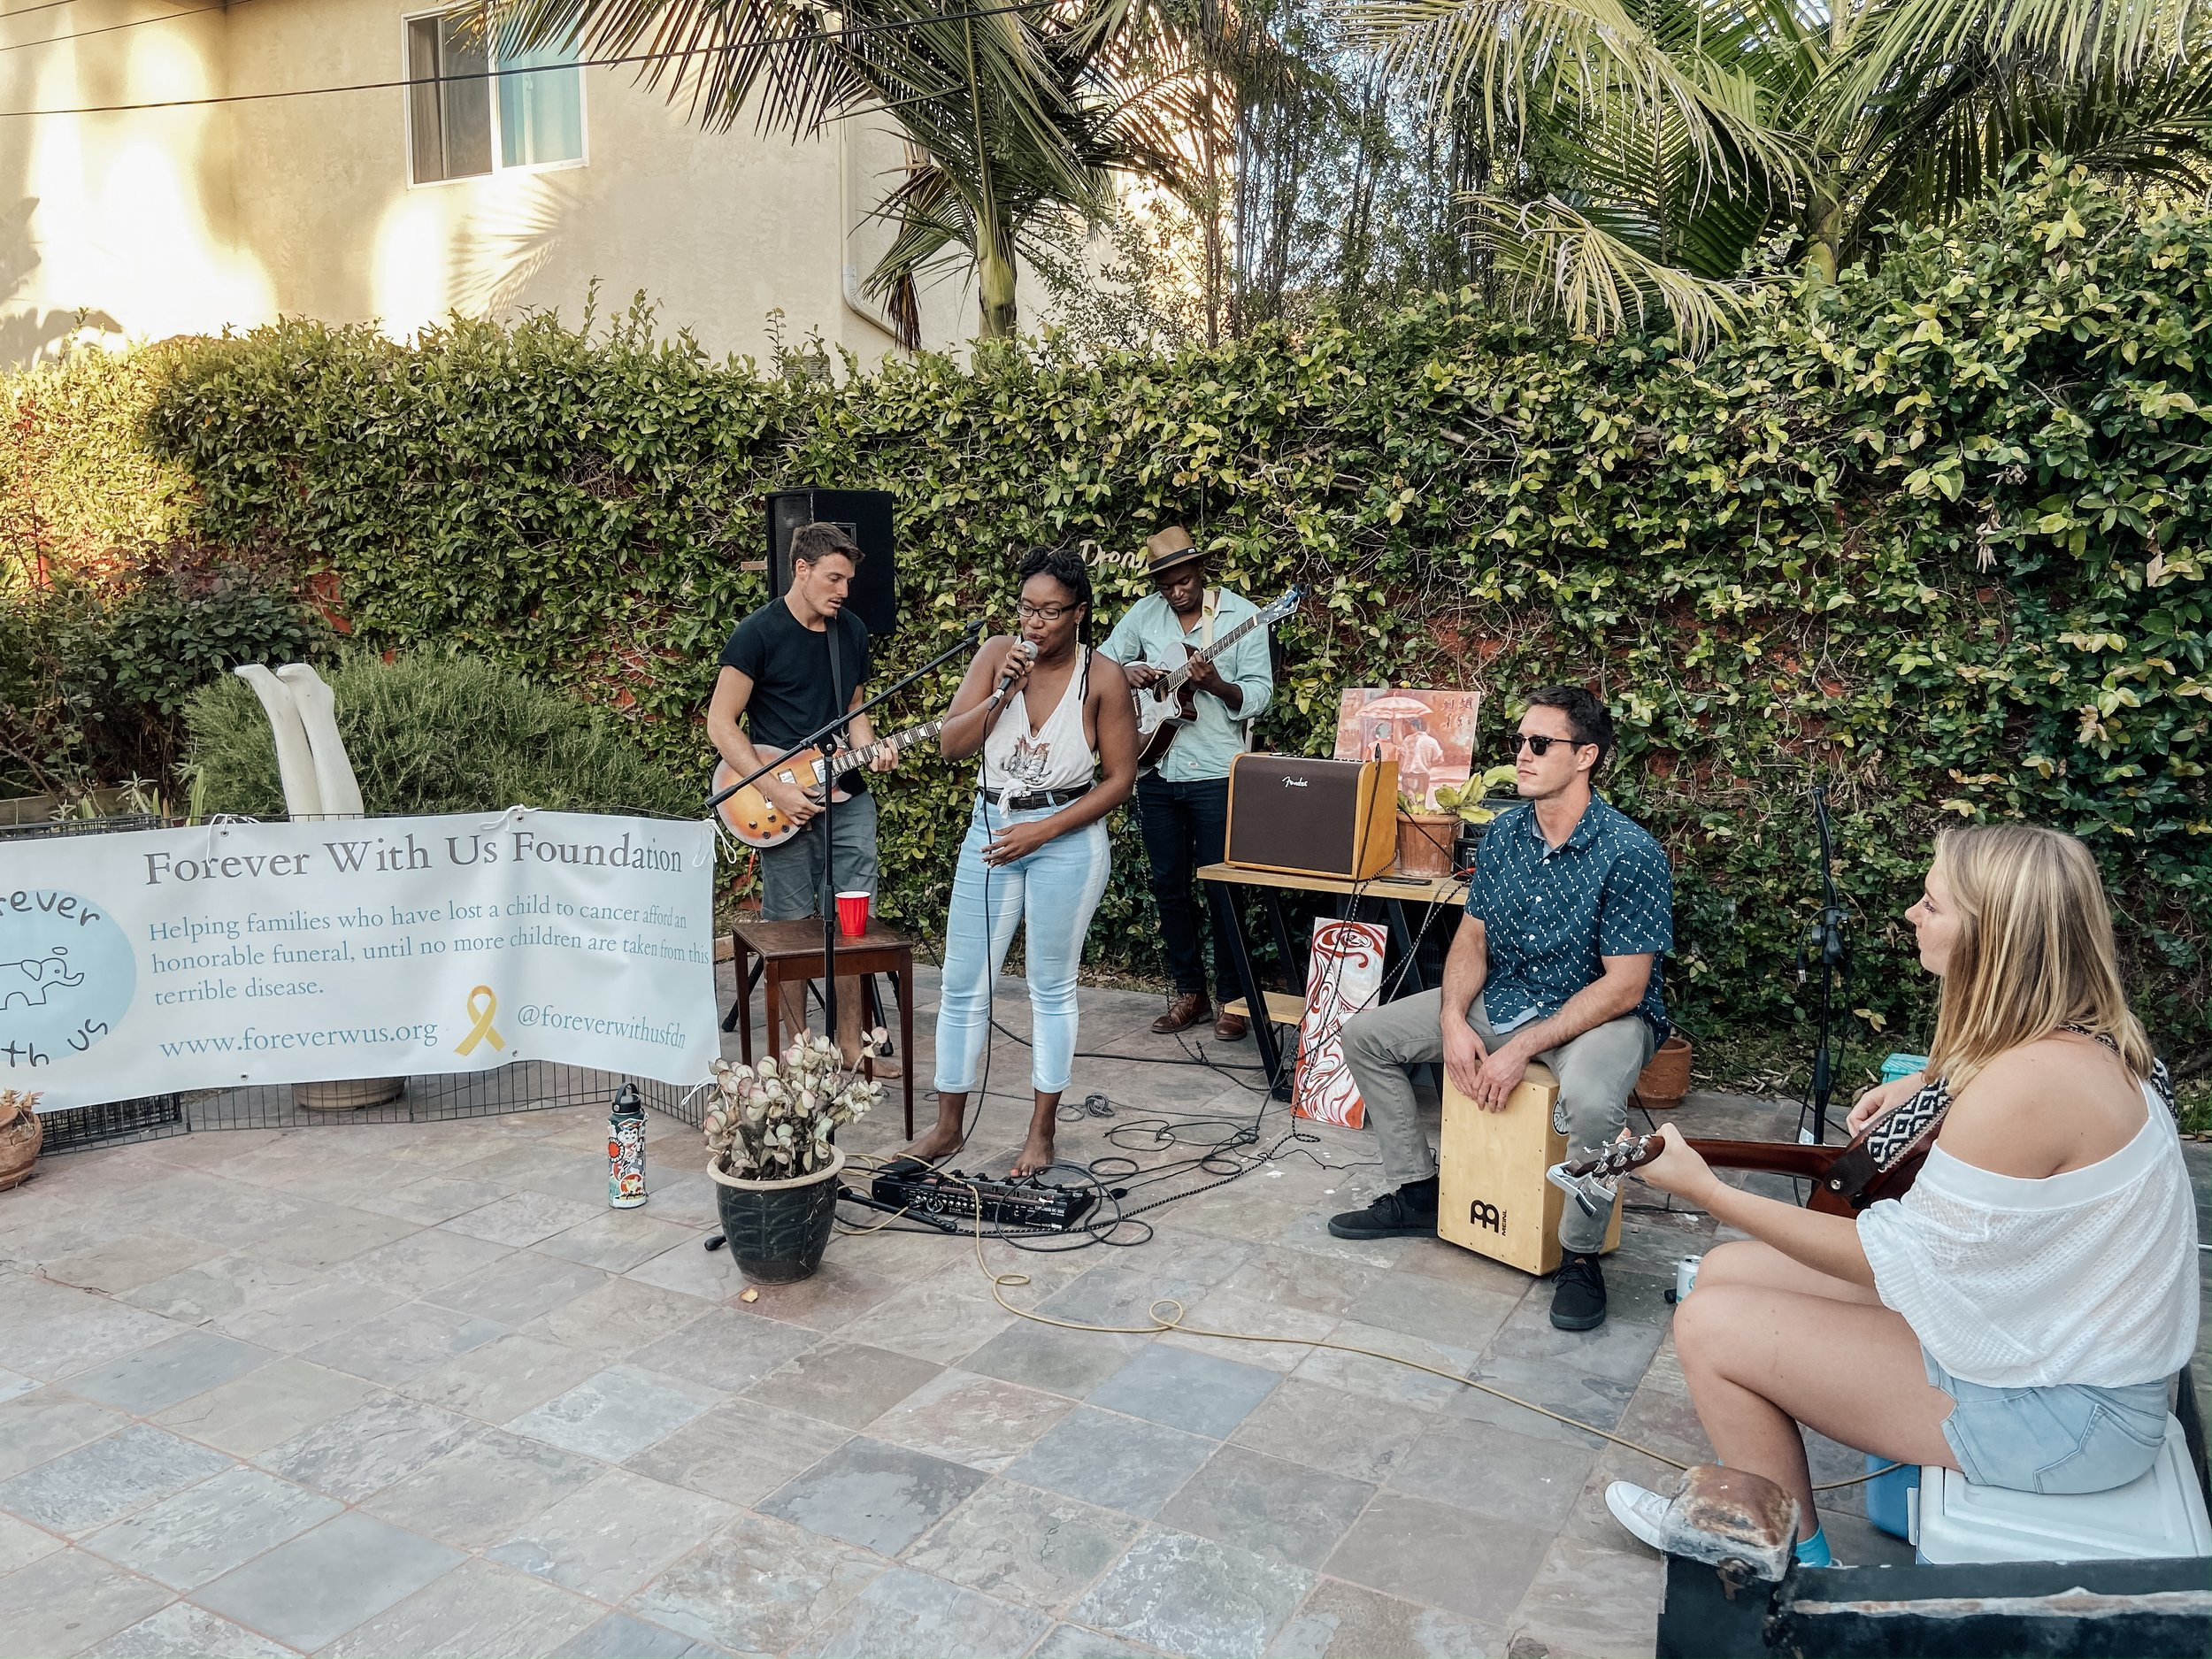 SD Music Event - 10/05/19This Saturday we held a live music fundraiser in Ocean Beach, San Diego! This amazing event had live performances by four incredible musicians and raised $474! Thank you so much to Jaclyn and everyone else who helped put this event on and attended.